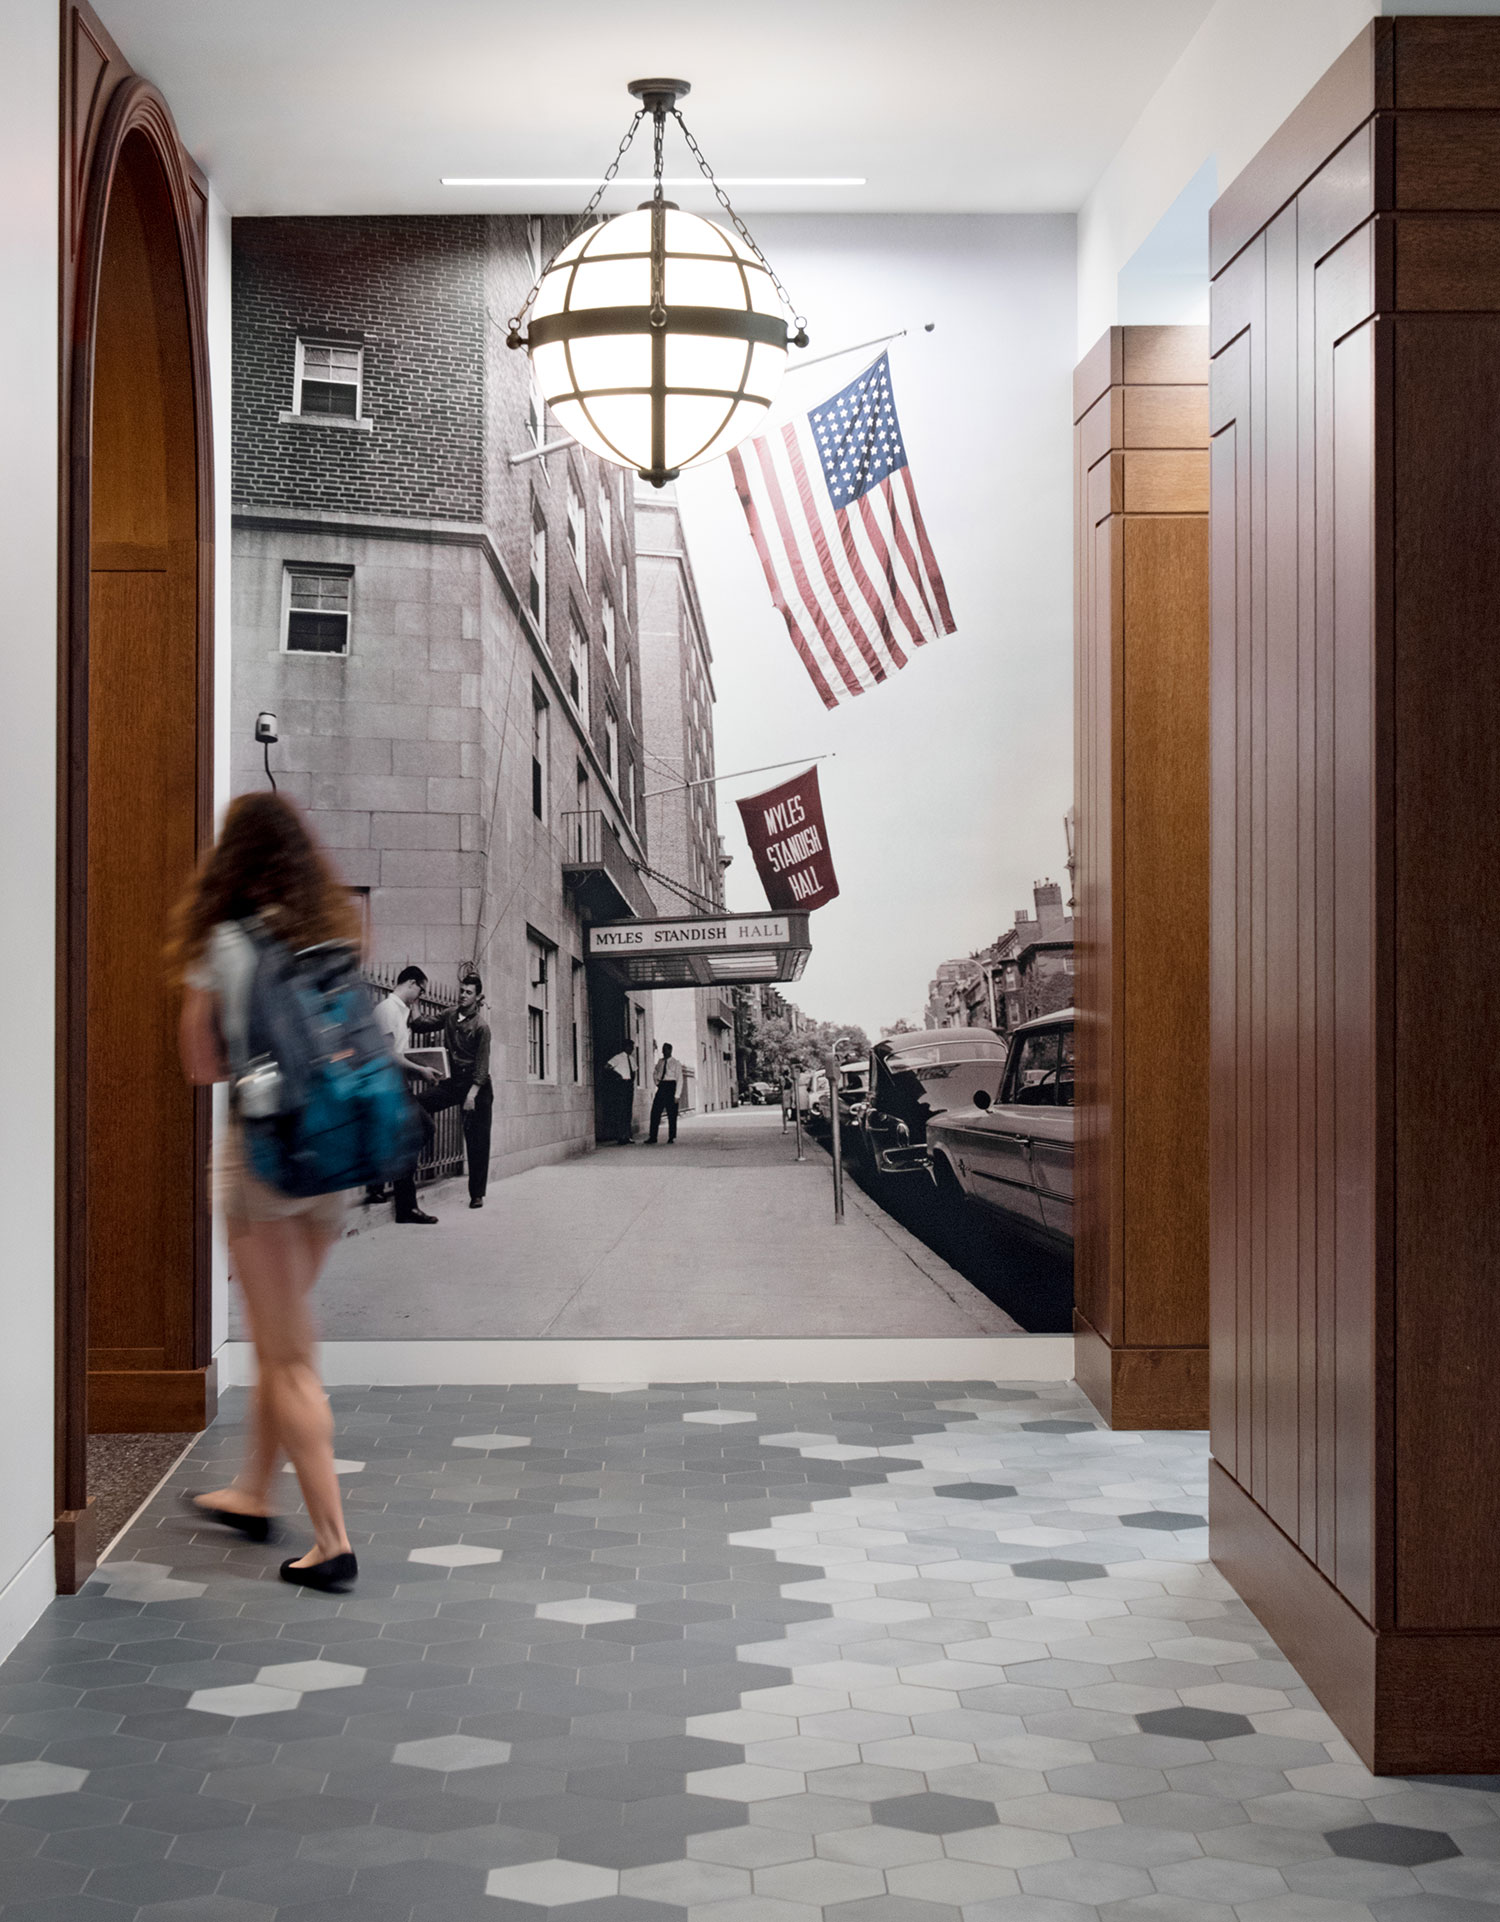 Historic photo mural in the lobby showing the original entrance